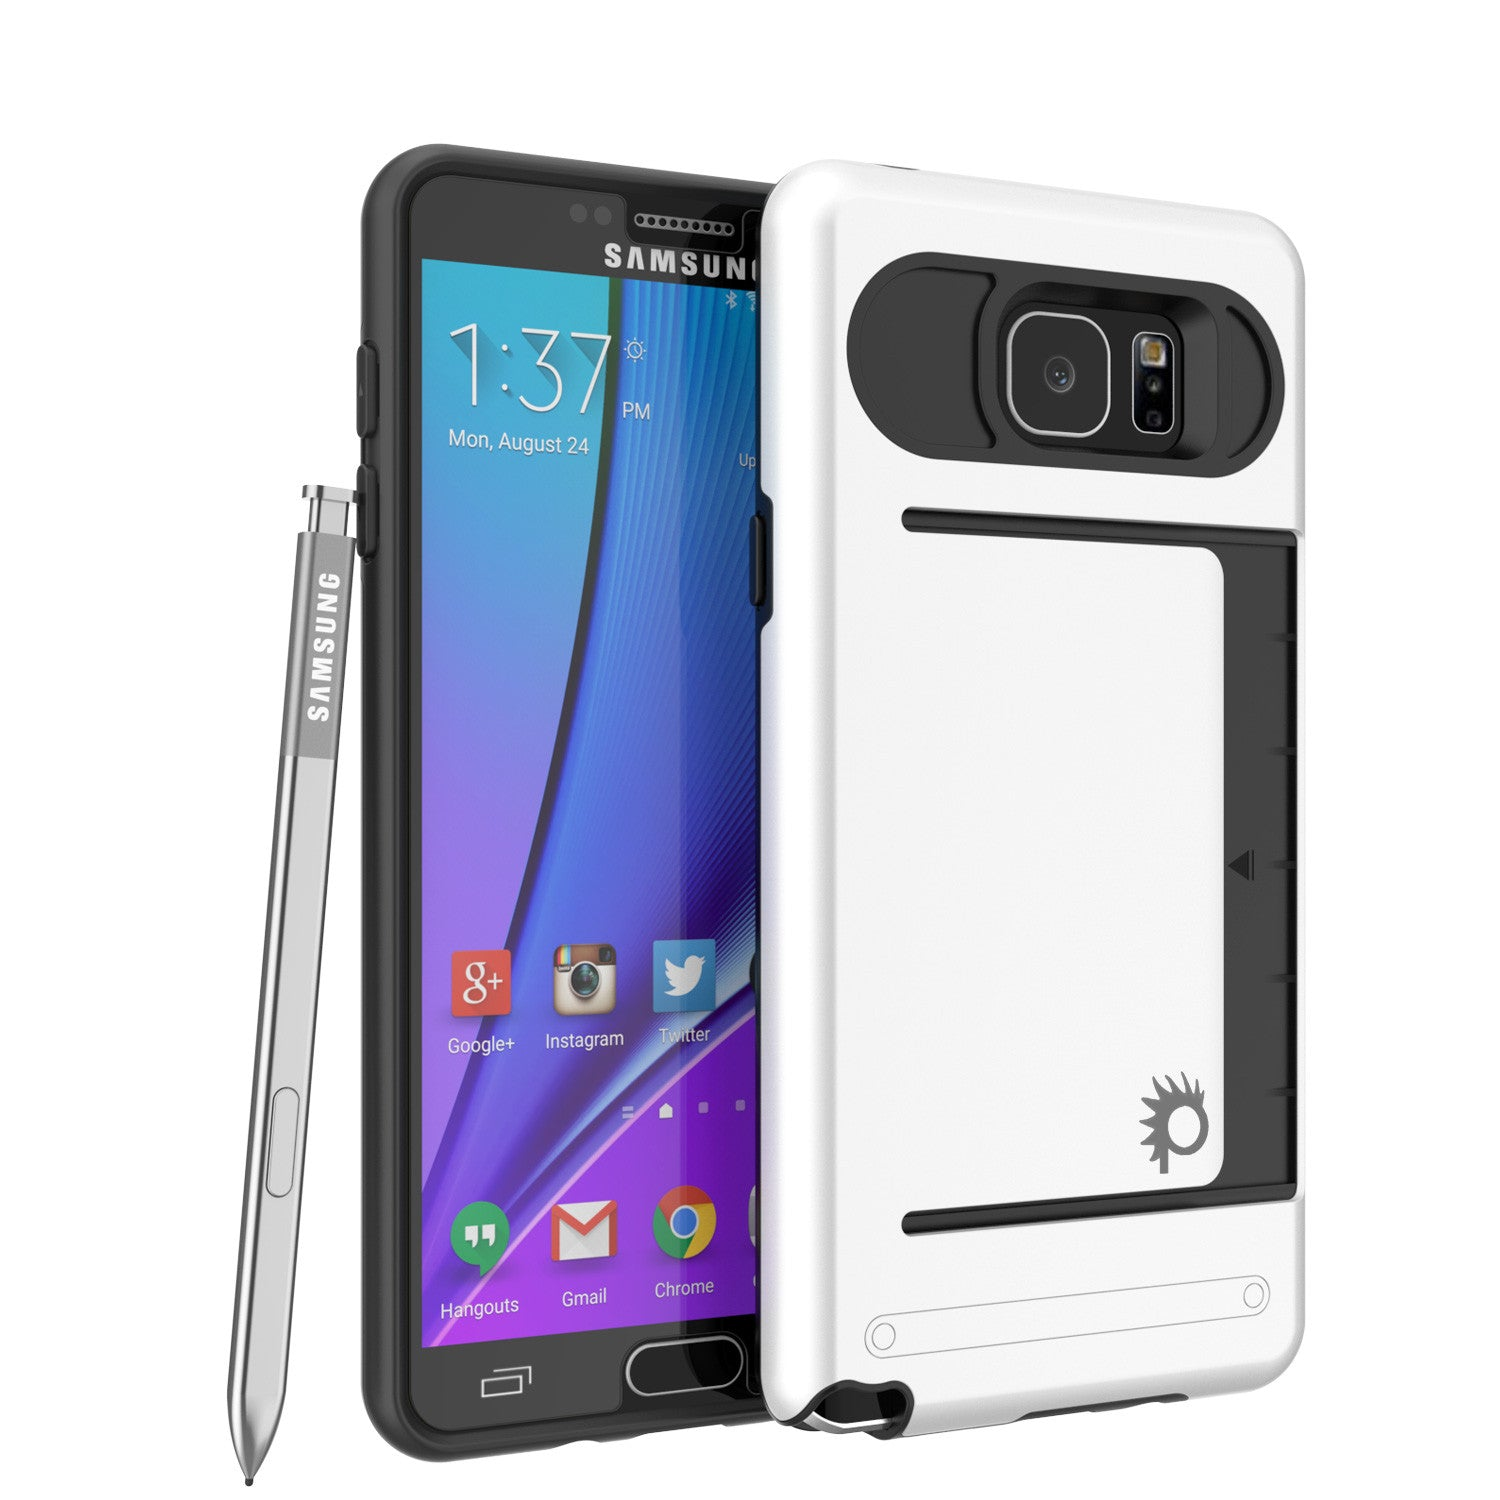 Galaxy Note 5 Case PunkCase CLUTCH White Series Slim Armor Soft Cover Case w/ Tempered Glass